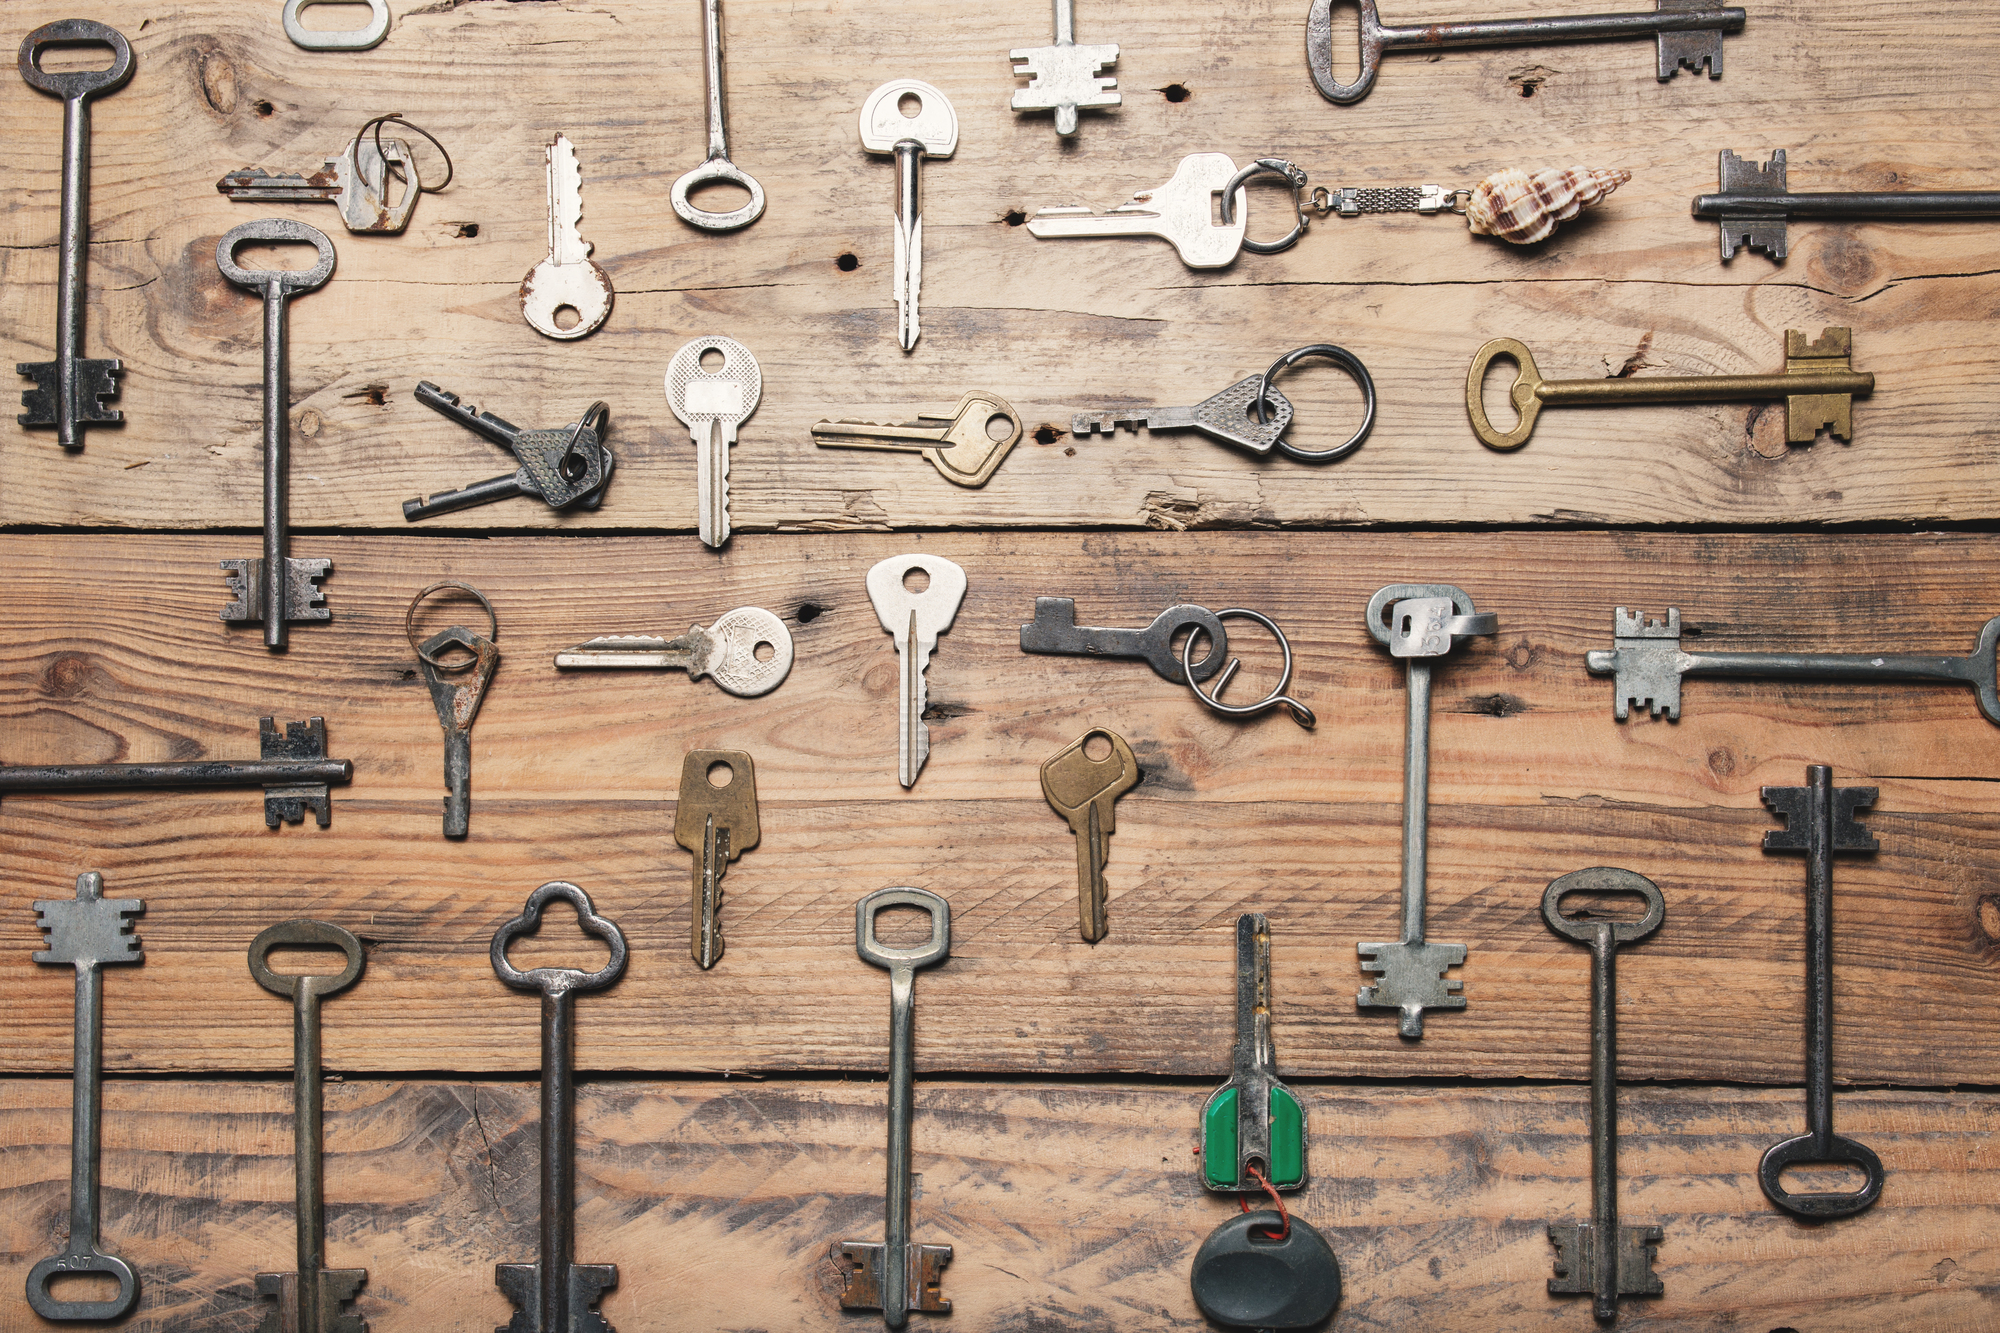 Some door keys aligned on old wooden surface, safety and security concept background.